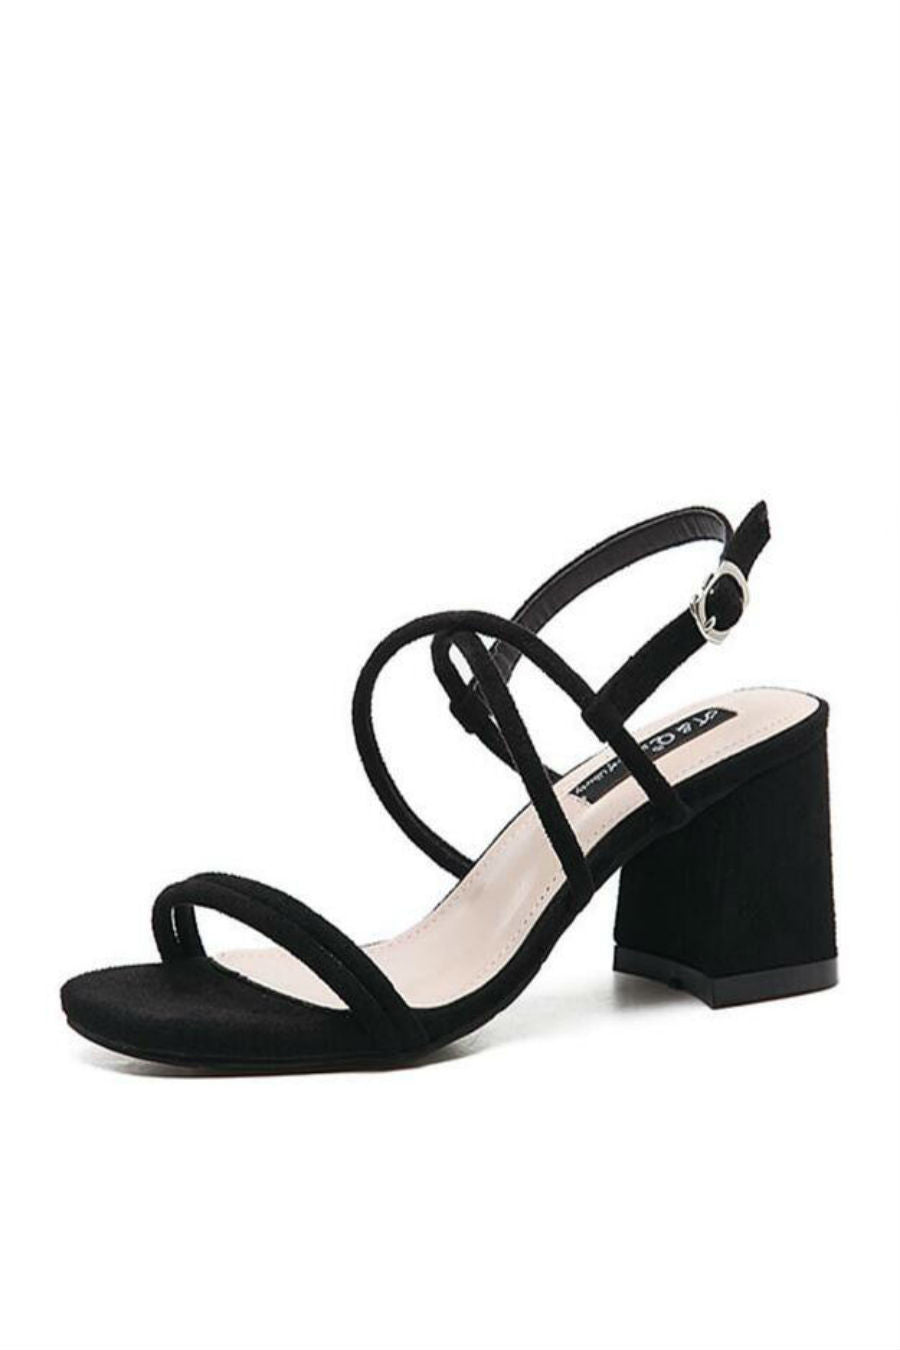 Black Crisscross Heels Sandals